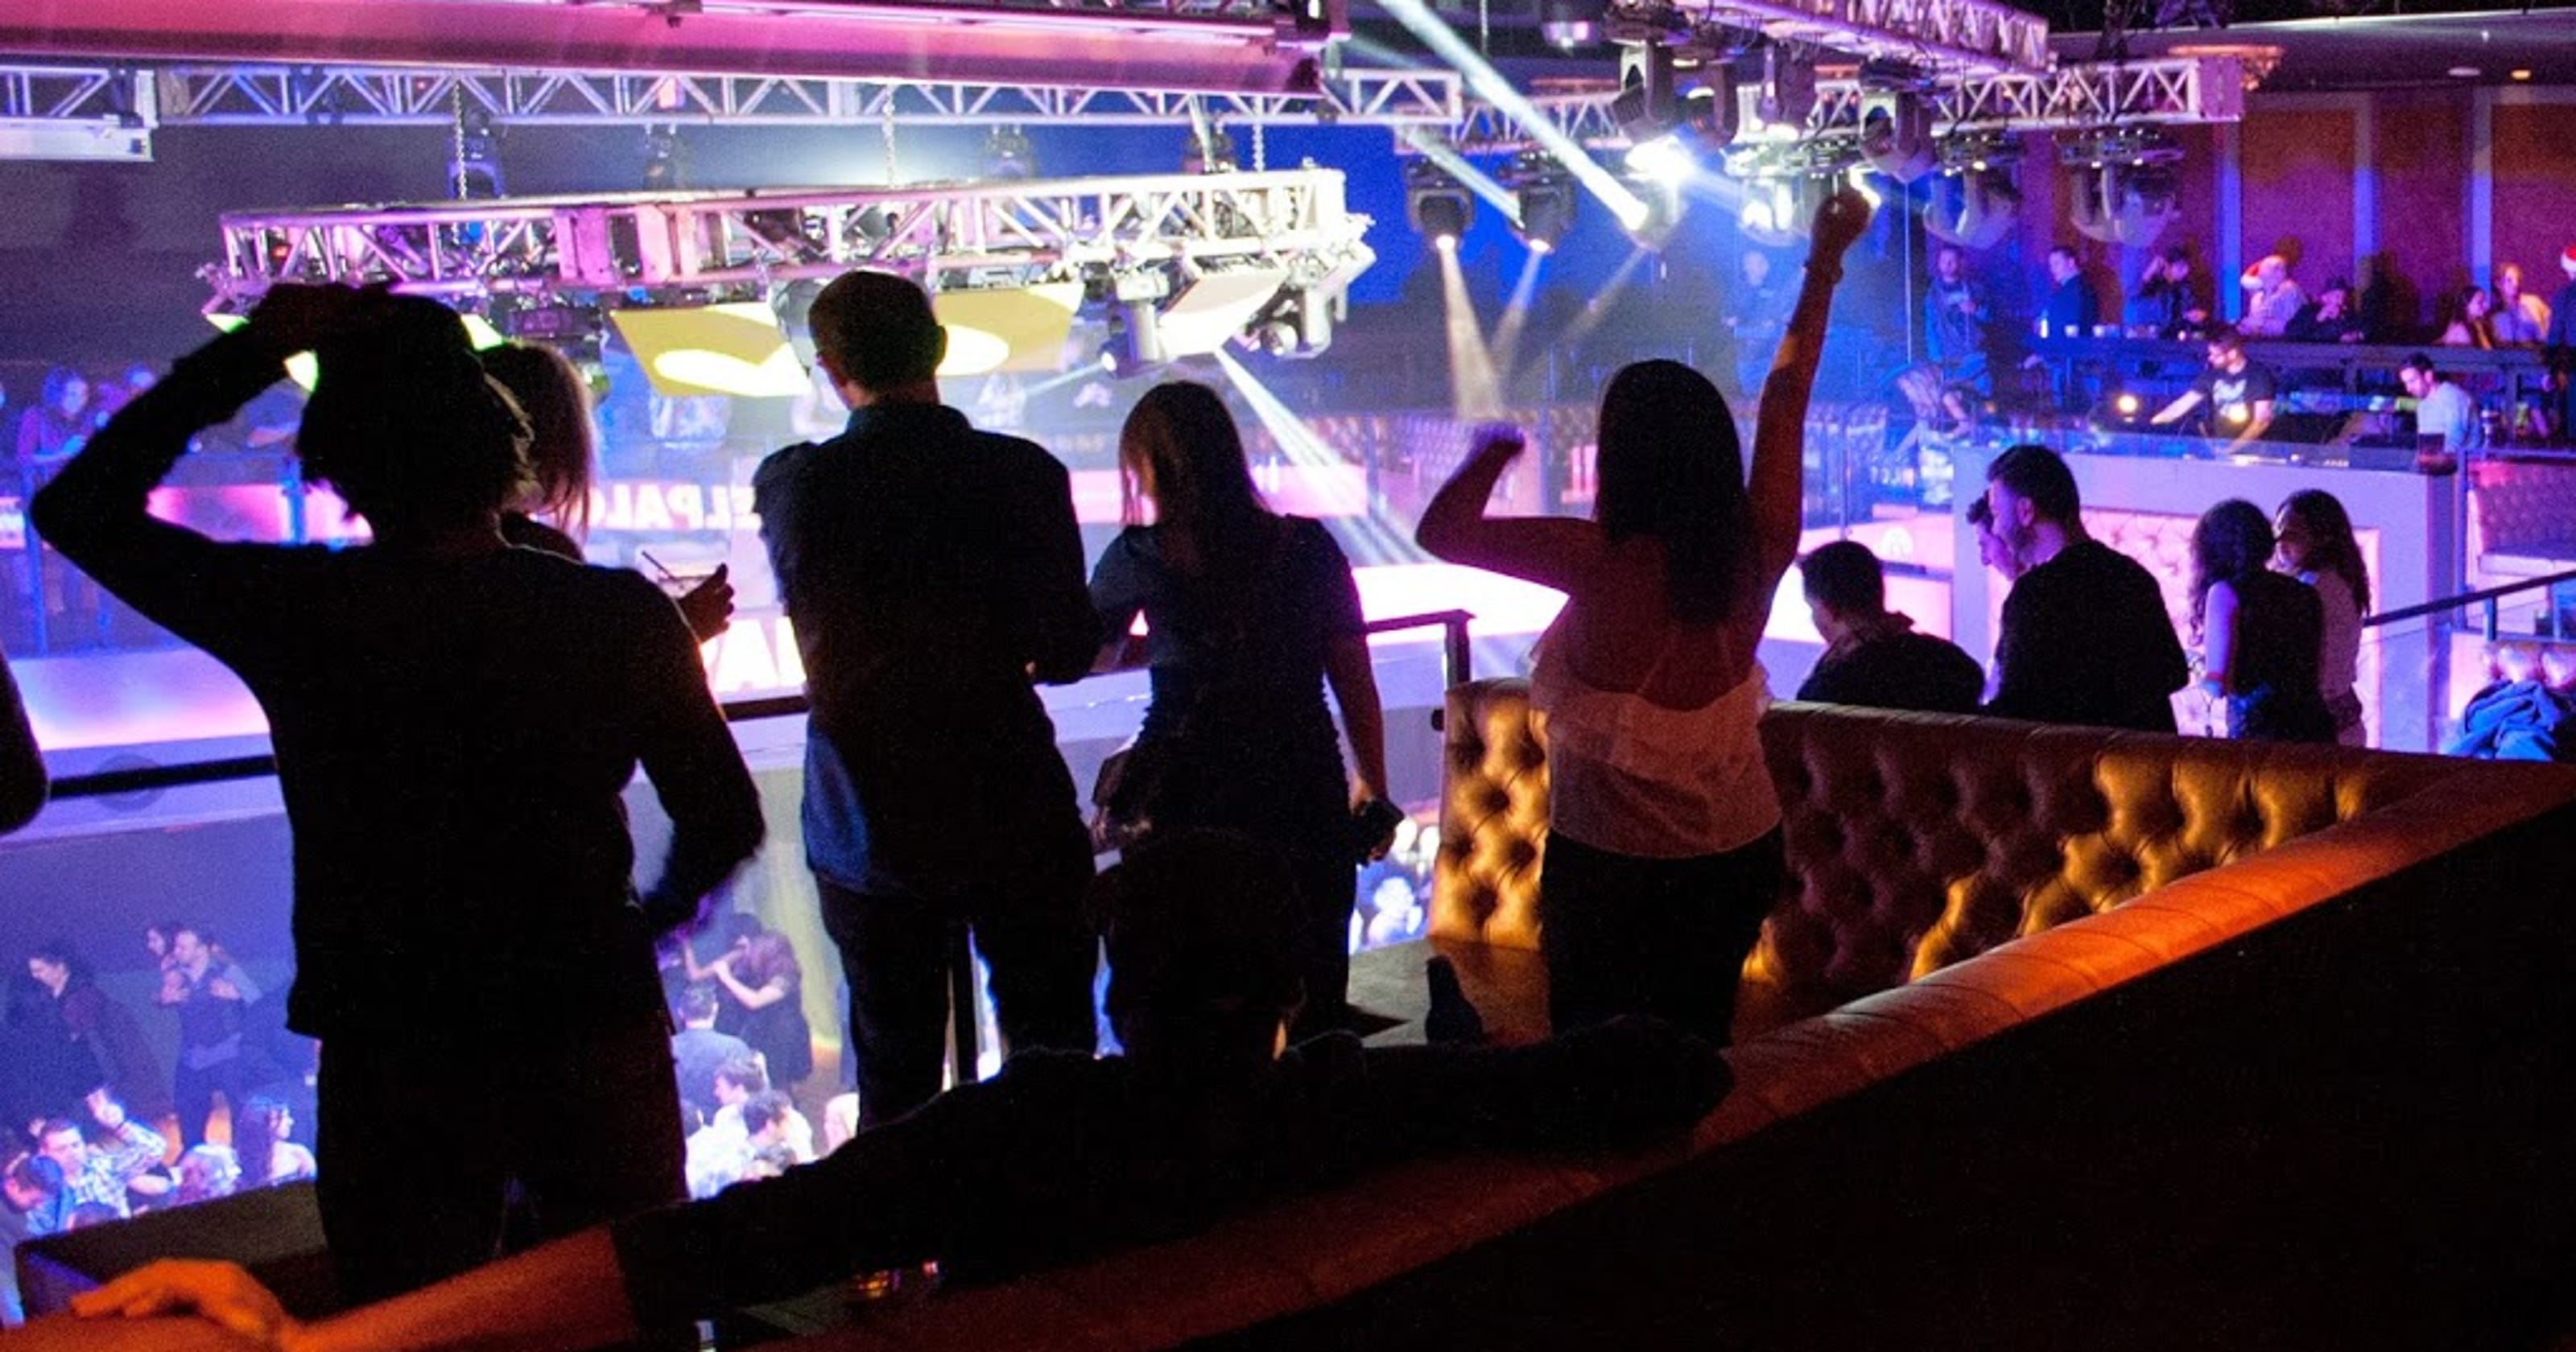 Best Bars And Nightlife Spots In Downtown Scottsdale